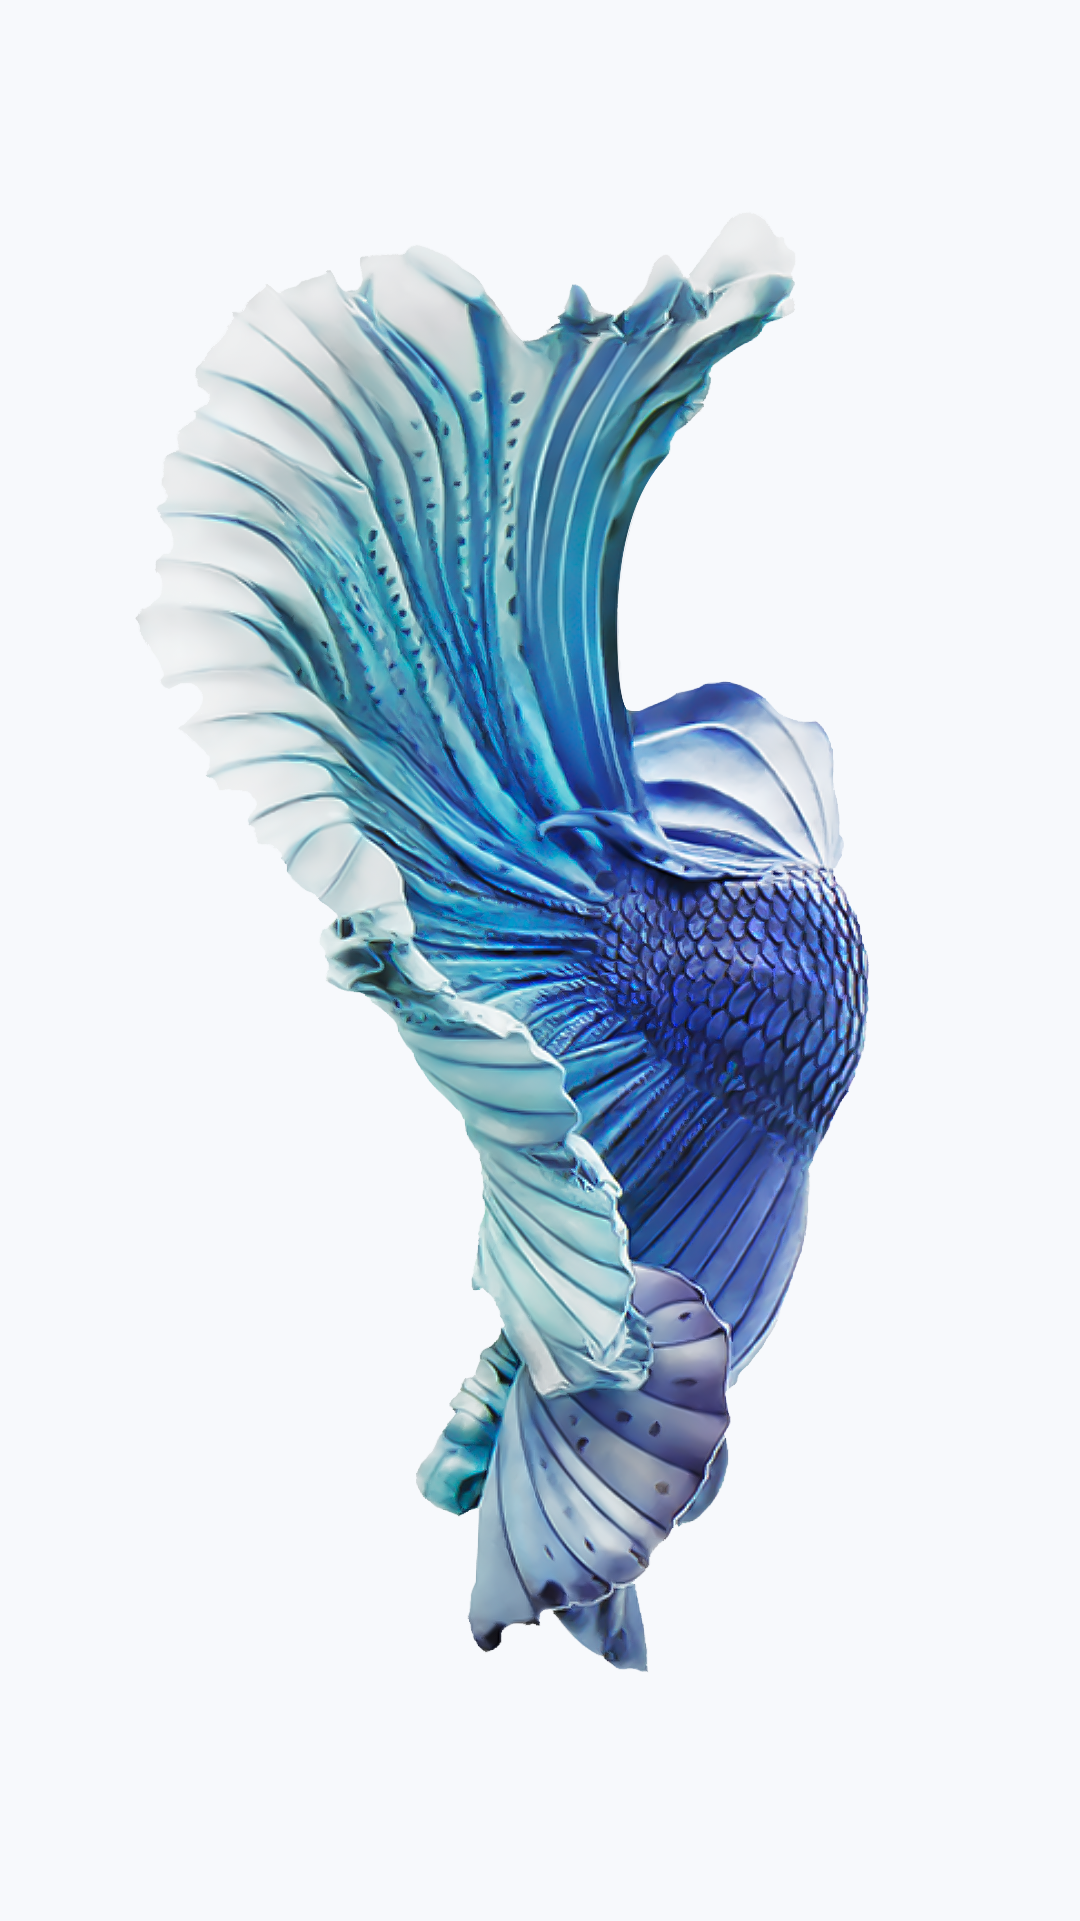 Iphone 6s Silver Blue Fish Wallpaper Png 1080 1921 Iphone 6s Wallpaper Ios Wallpapers Fish Wallpaper